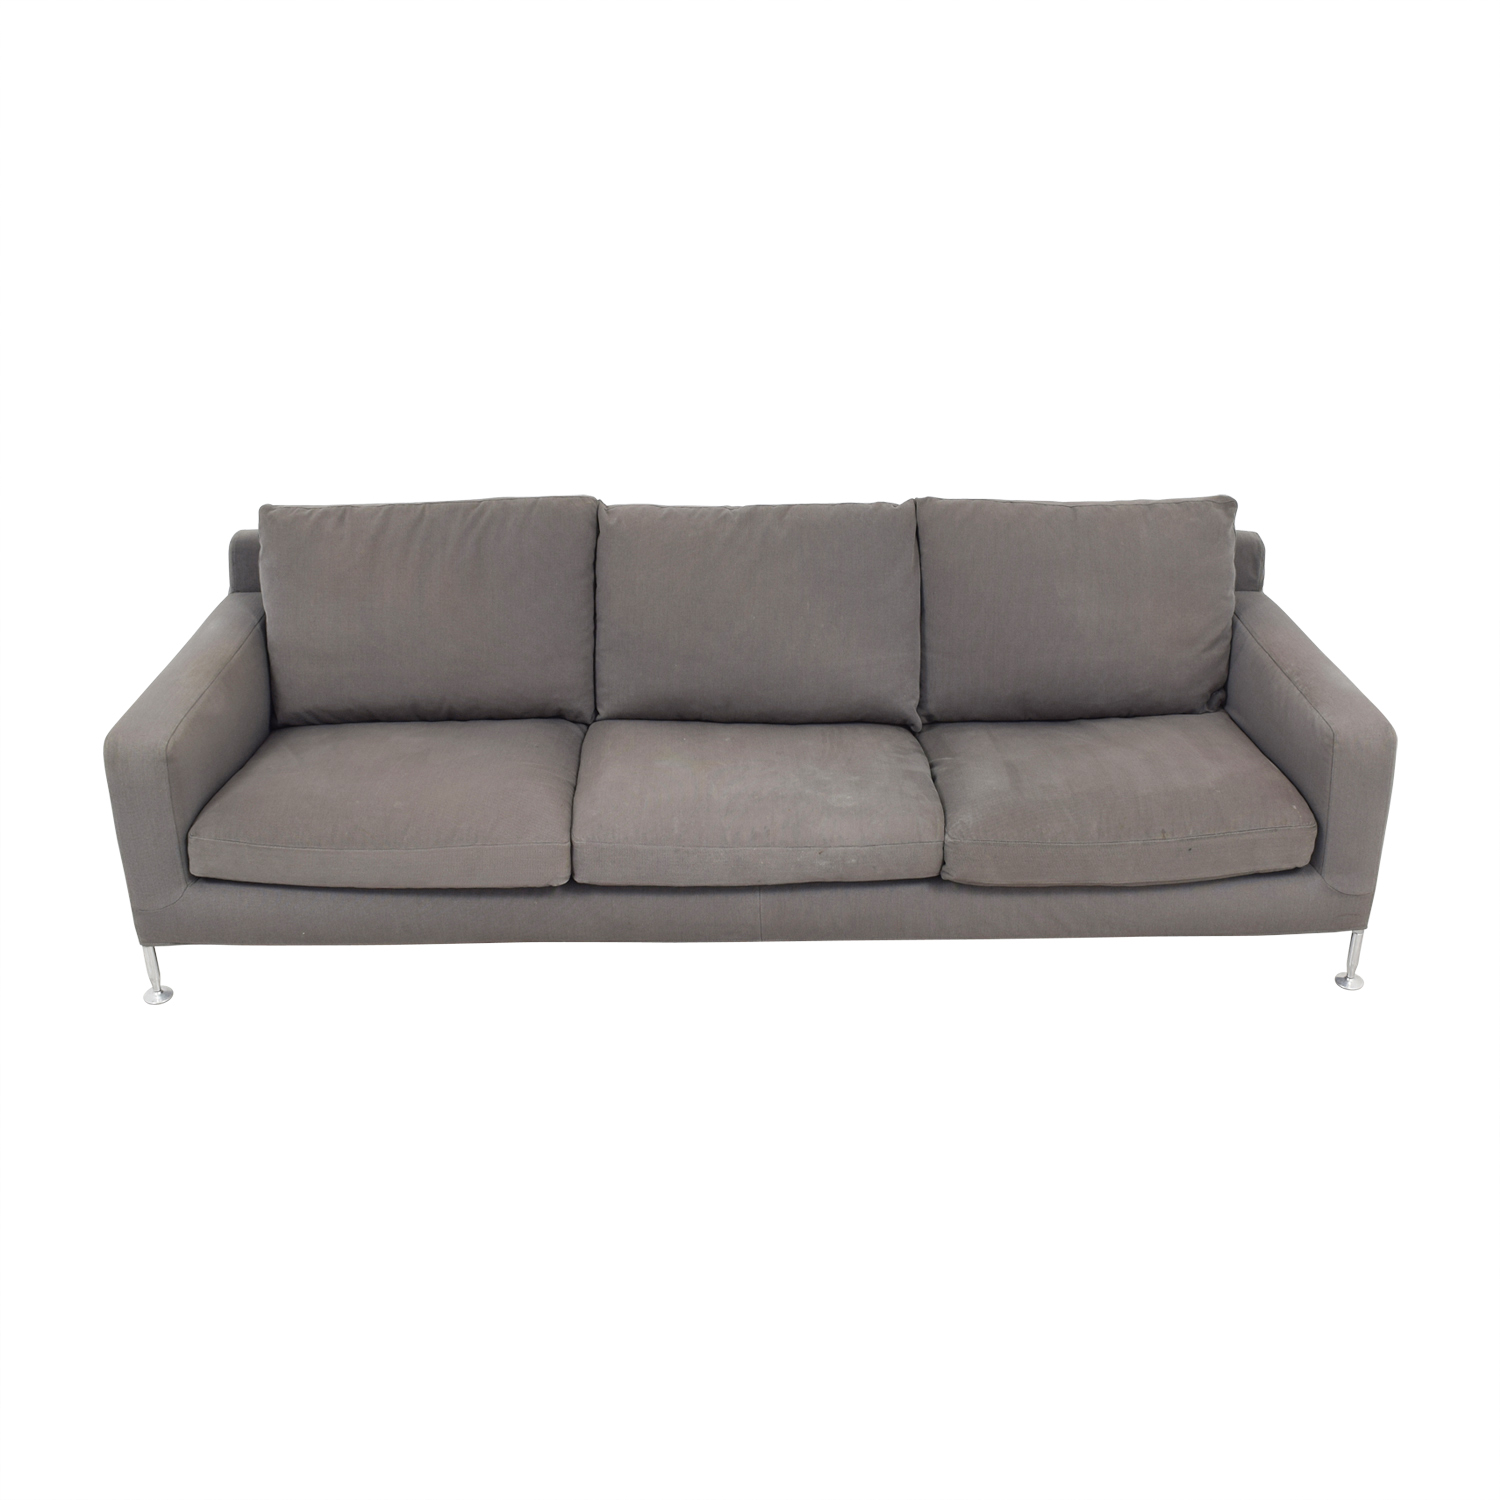 shop B&B Italia B&B Italia Harry Grey Three-Cushion Couch online